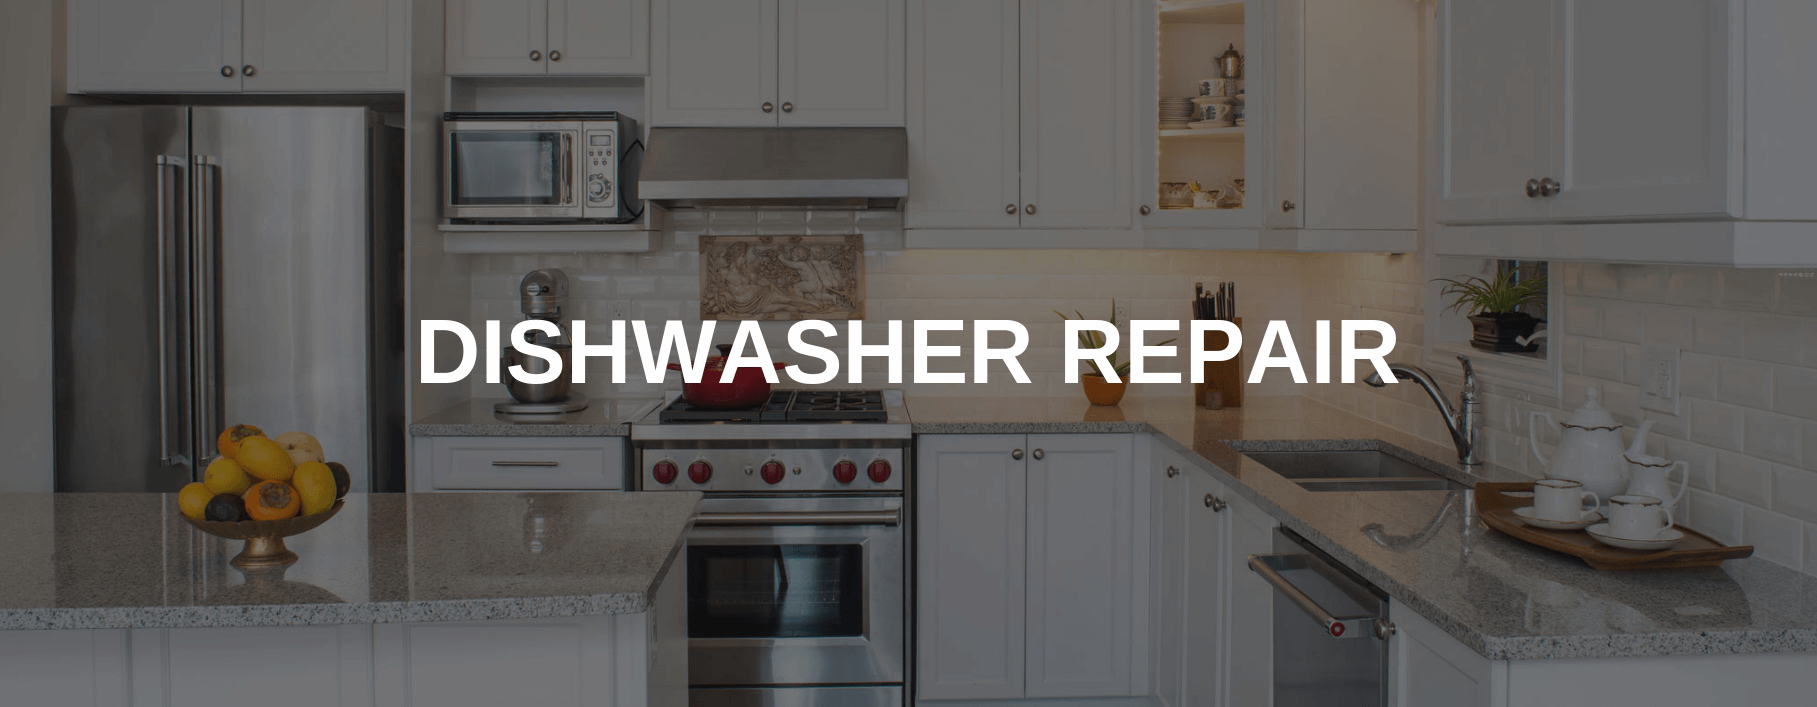 dishwasher repair baltimore